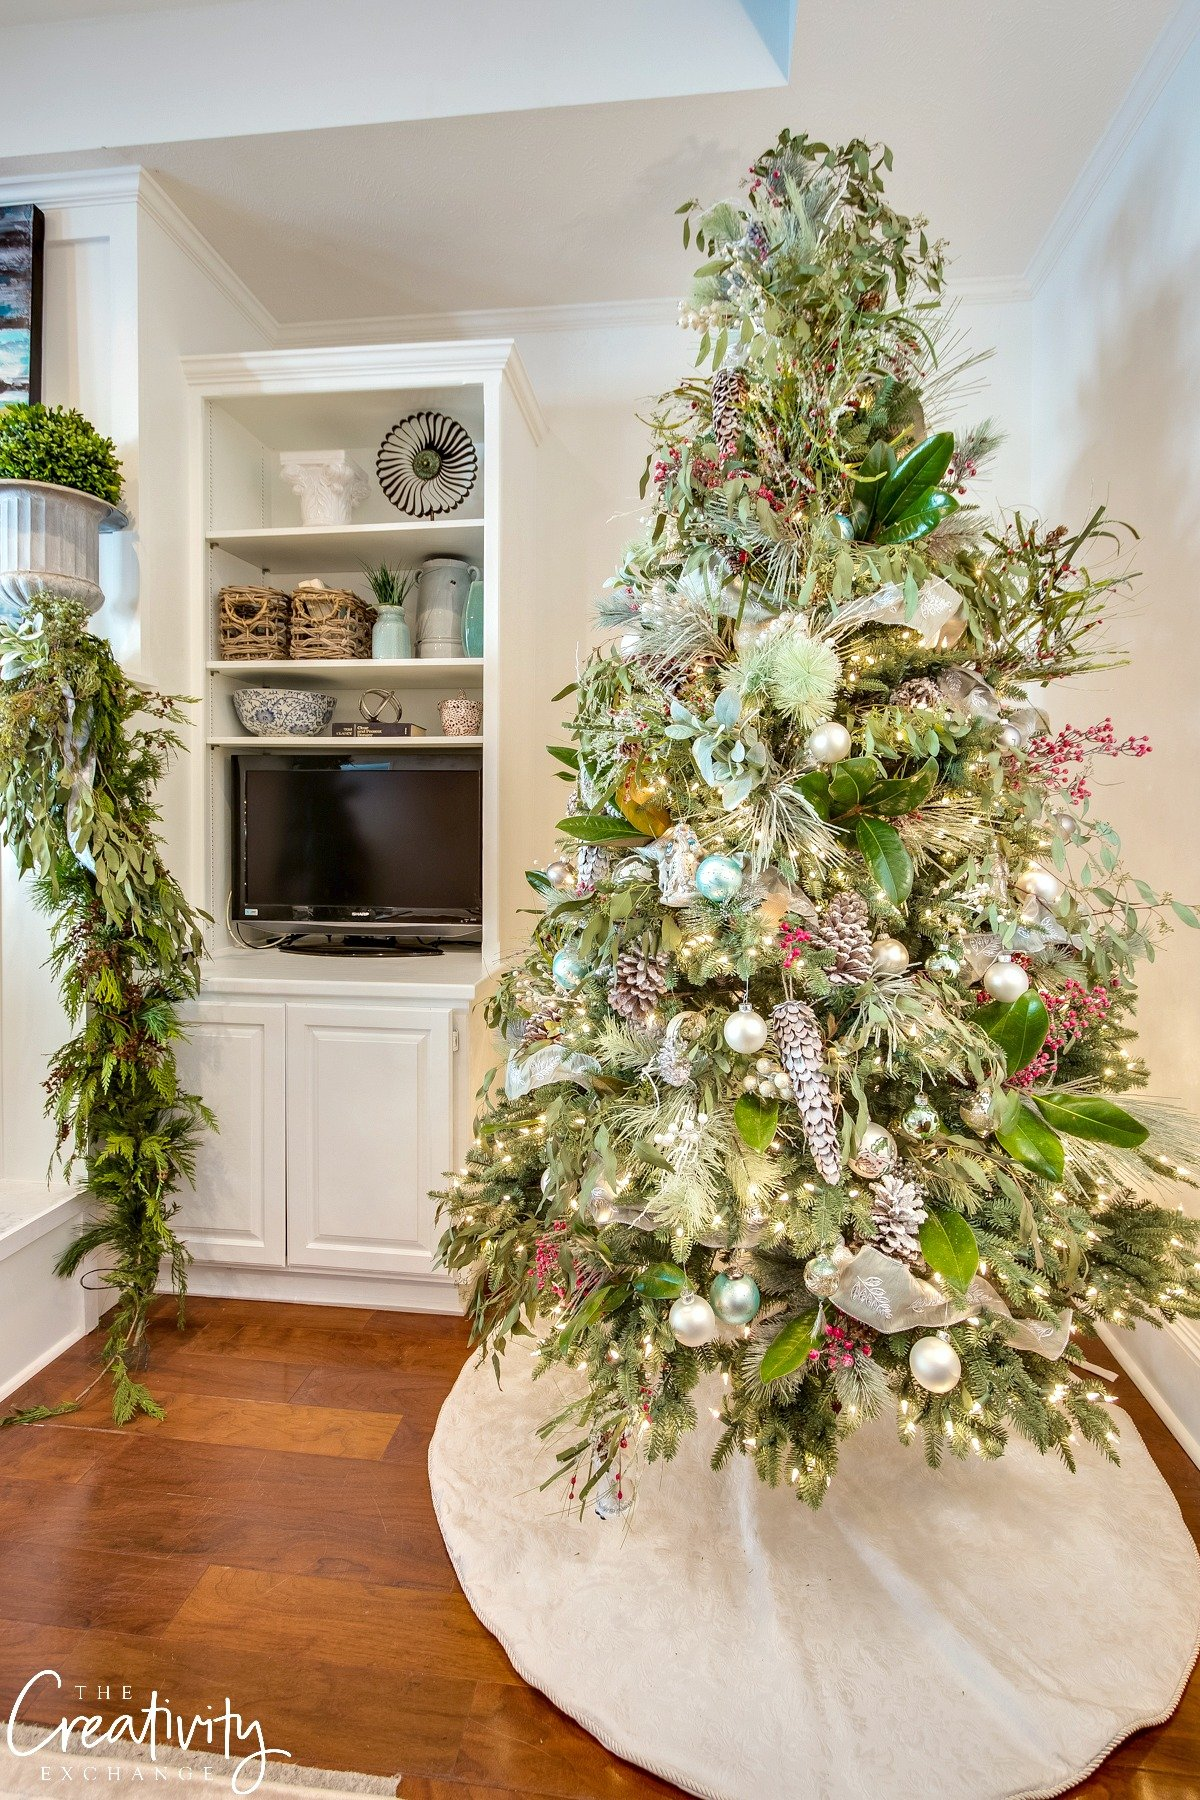 Winter wonderland Christmas tree mixed with magnolia leaves and eucalyptus